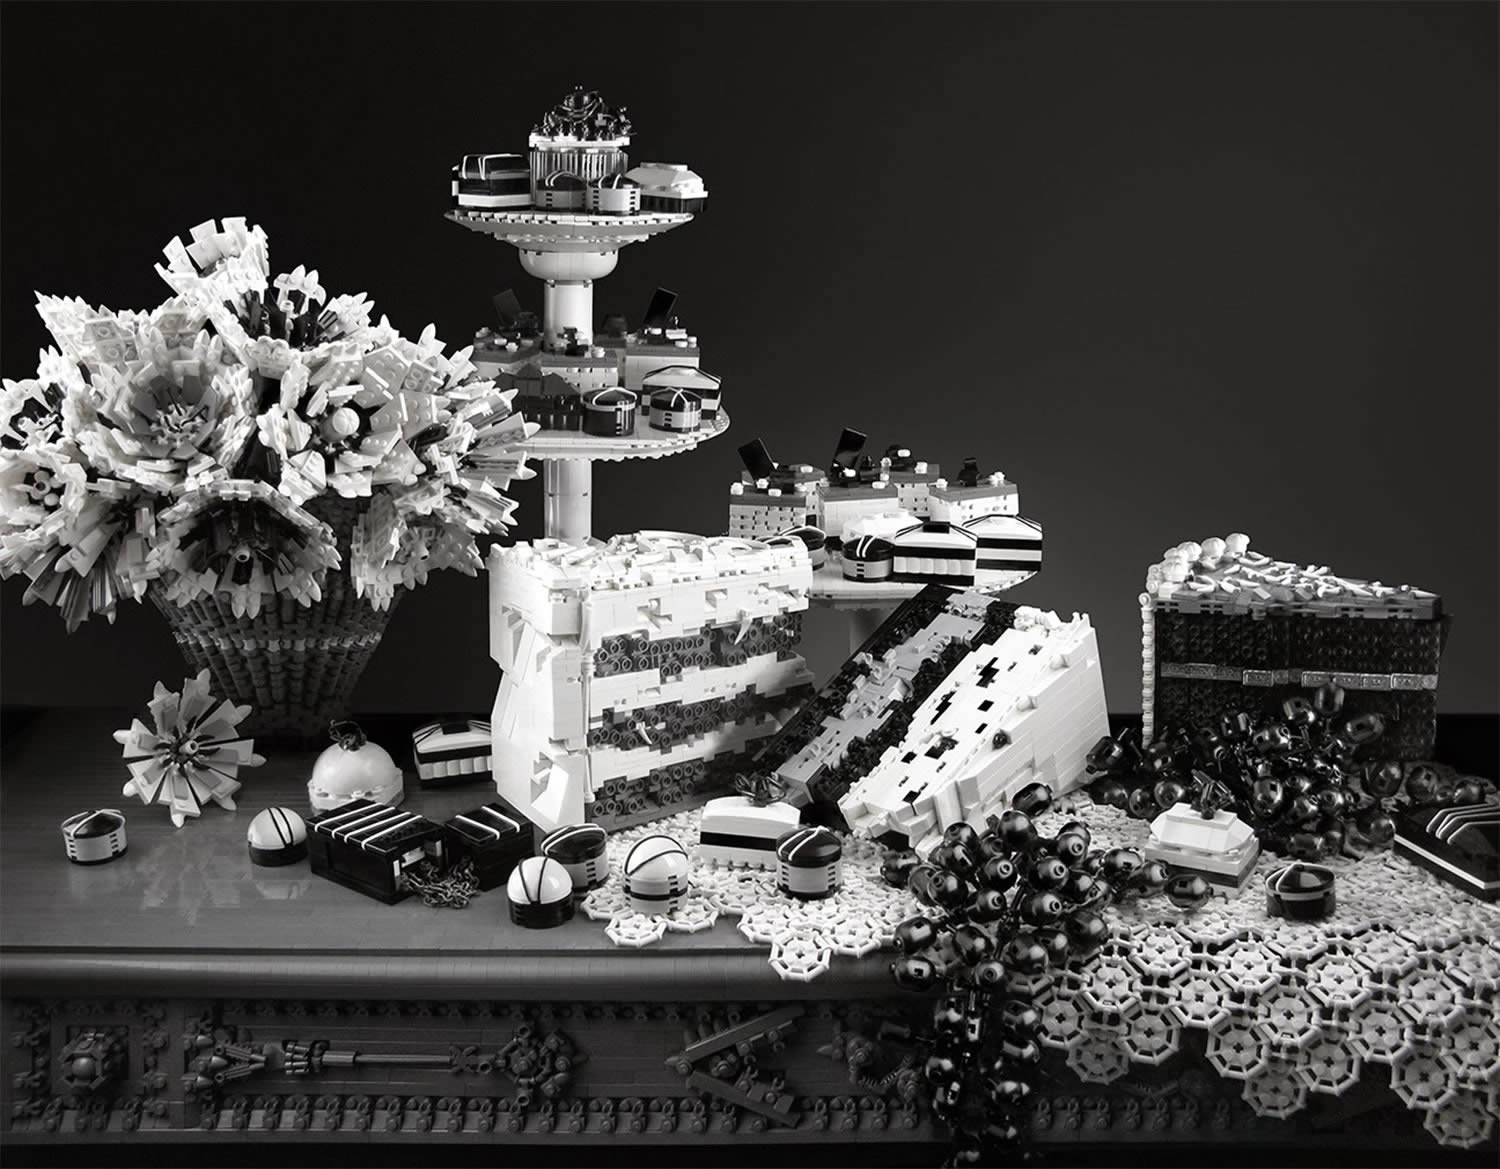 sickening sweet, lego of cakes by mike doyle